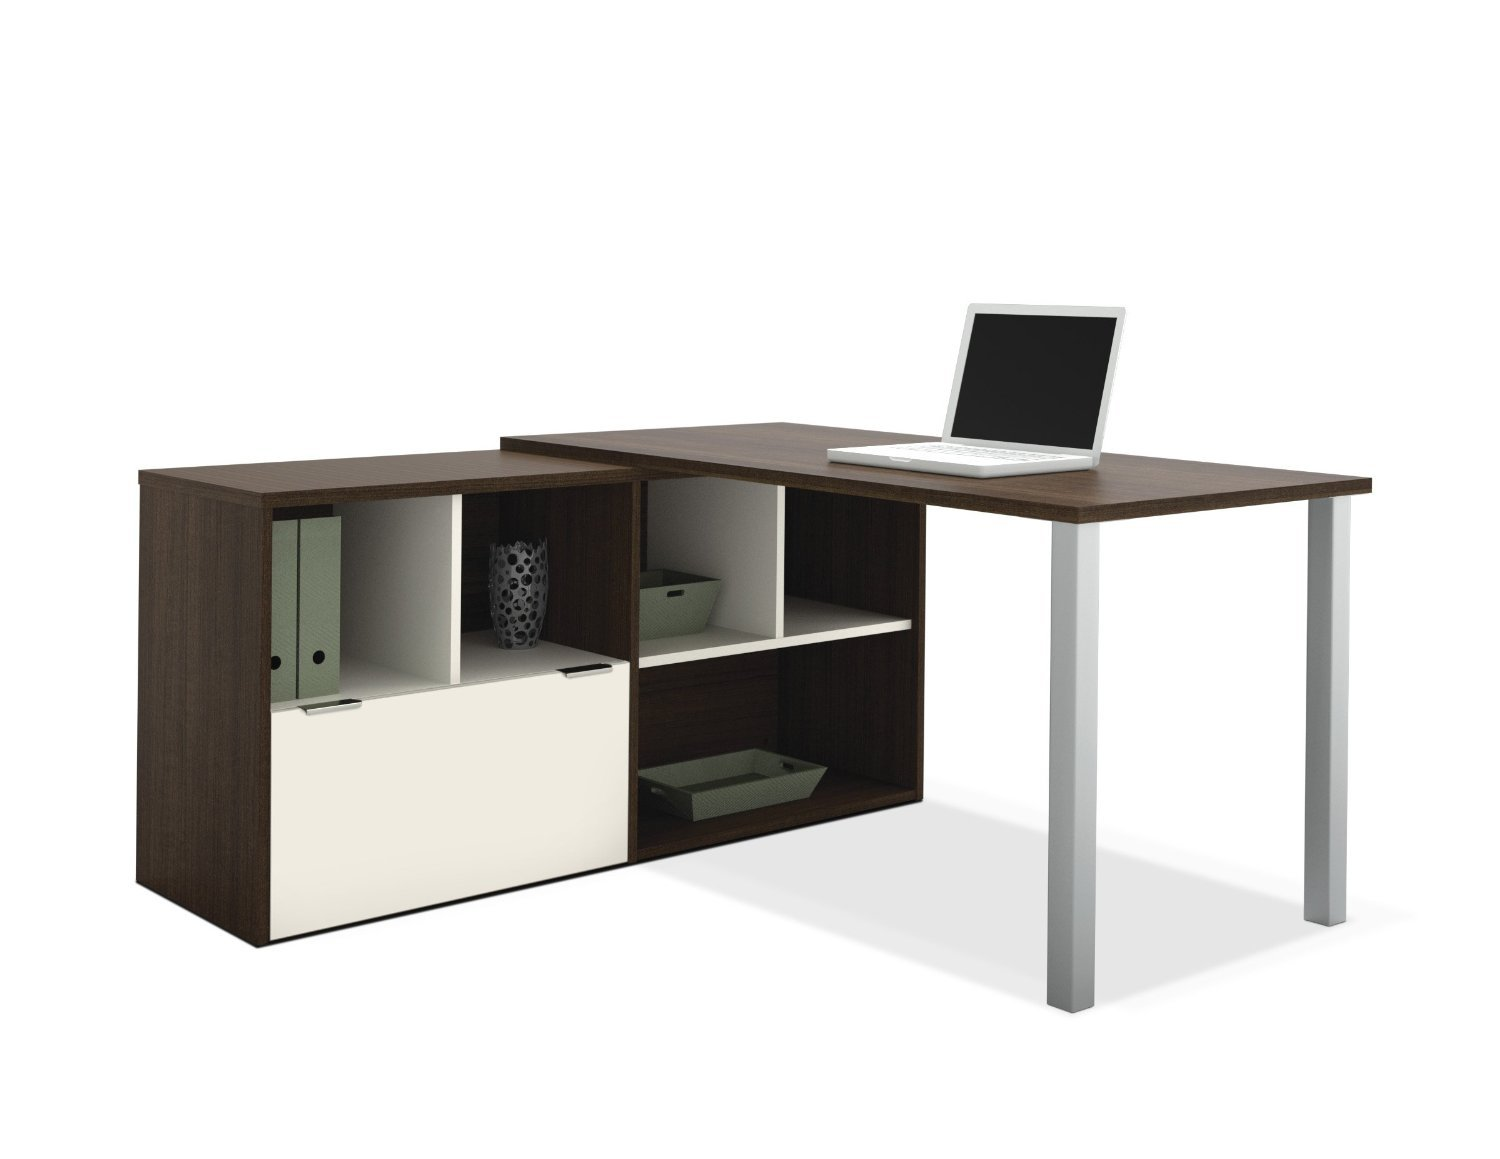 Amazon L Shaped Desk In Tuxedo And Sandstone Finish Kitchen Dining